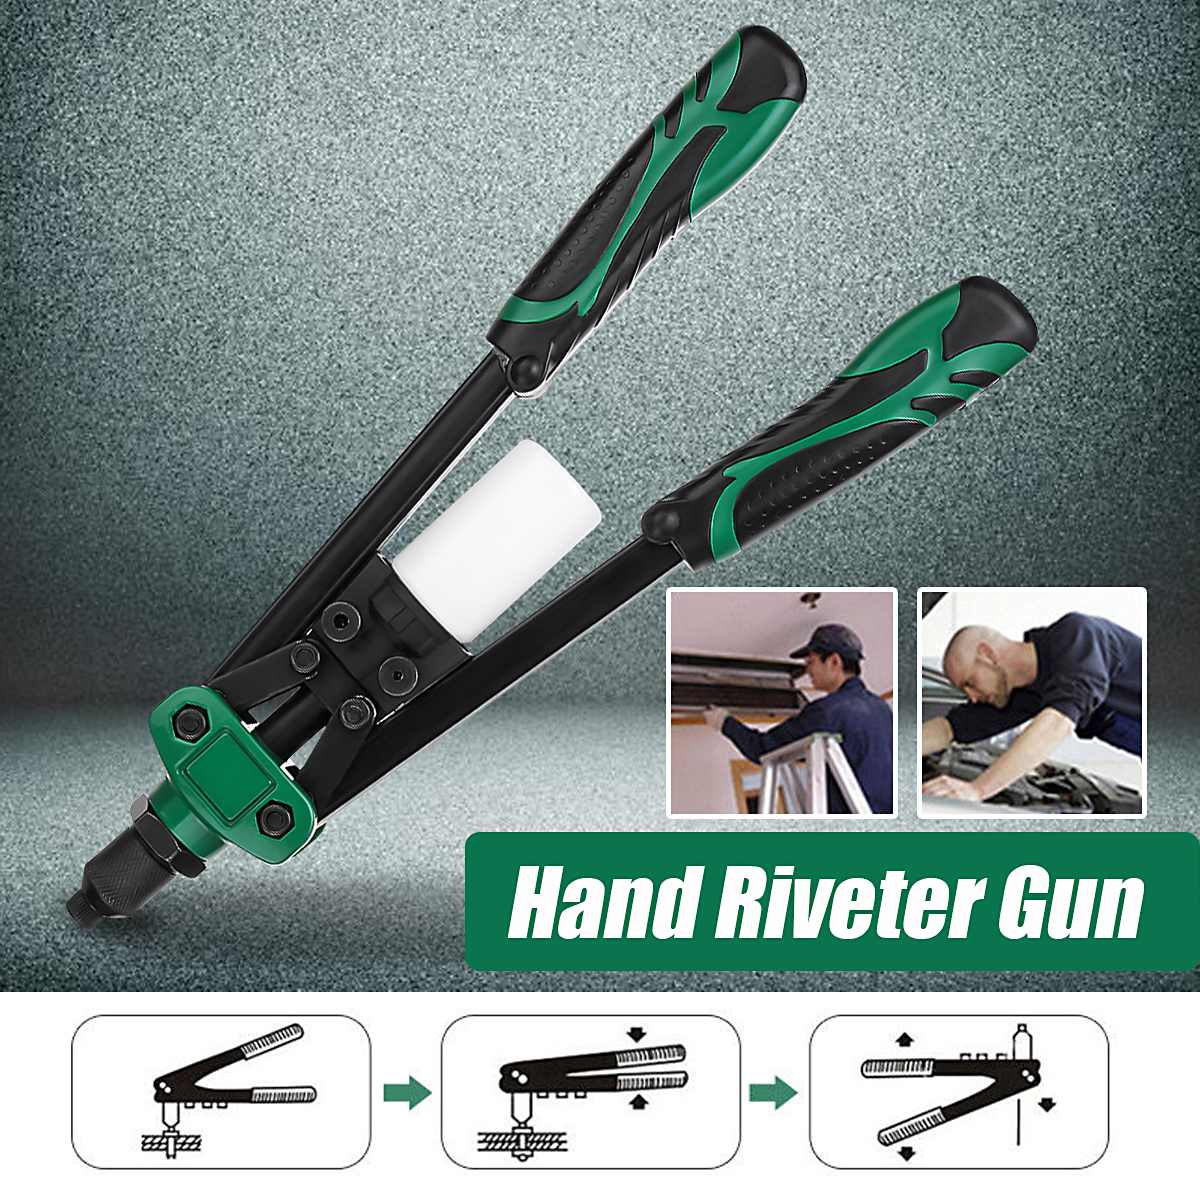 13 Inch Hand Threaded Rivet Nuts Gun Hand Riveter Household Industrial Manual Rivet Tool For 2.4/3.2/4.0/4.8/6.4mm Riveter Head